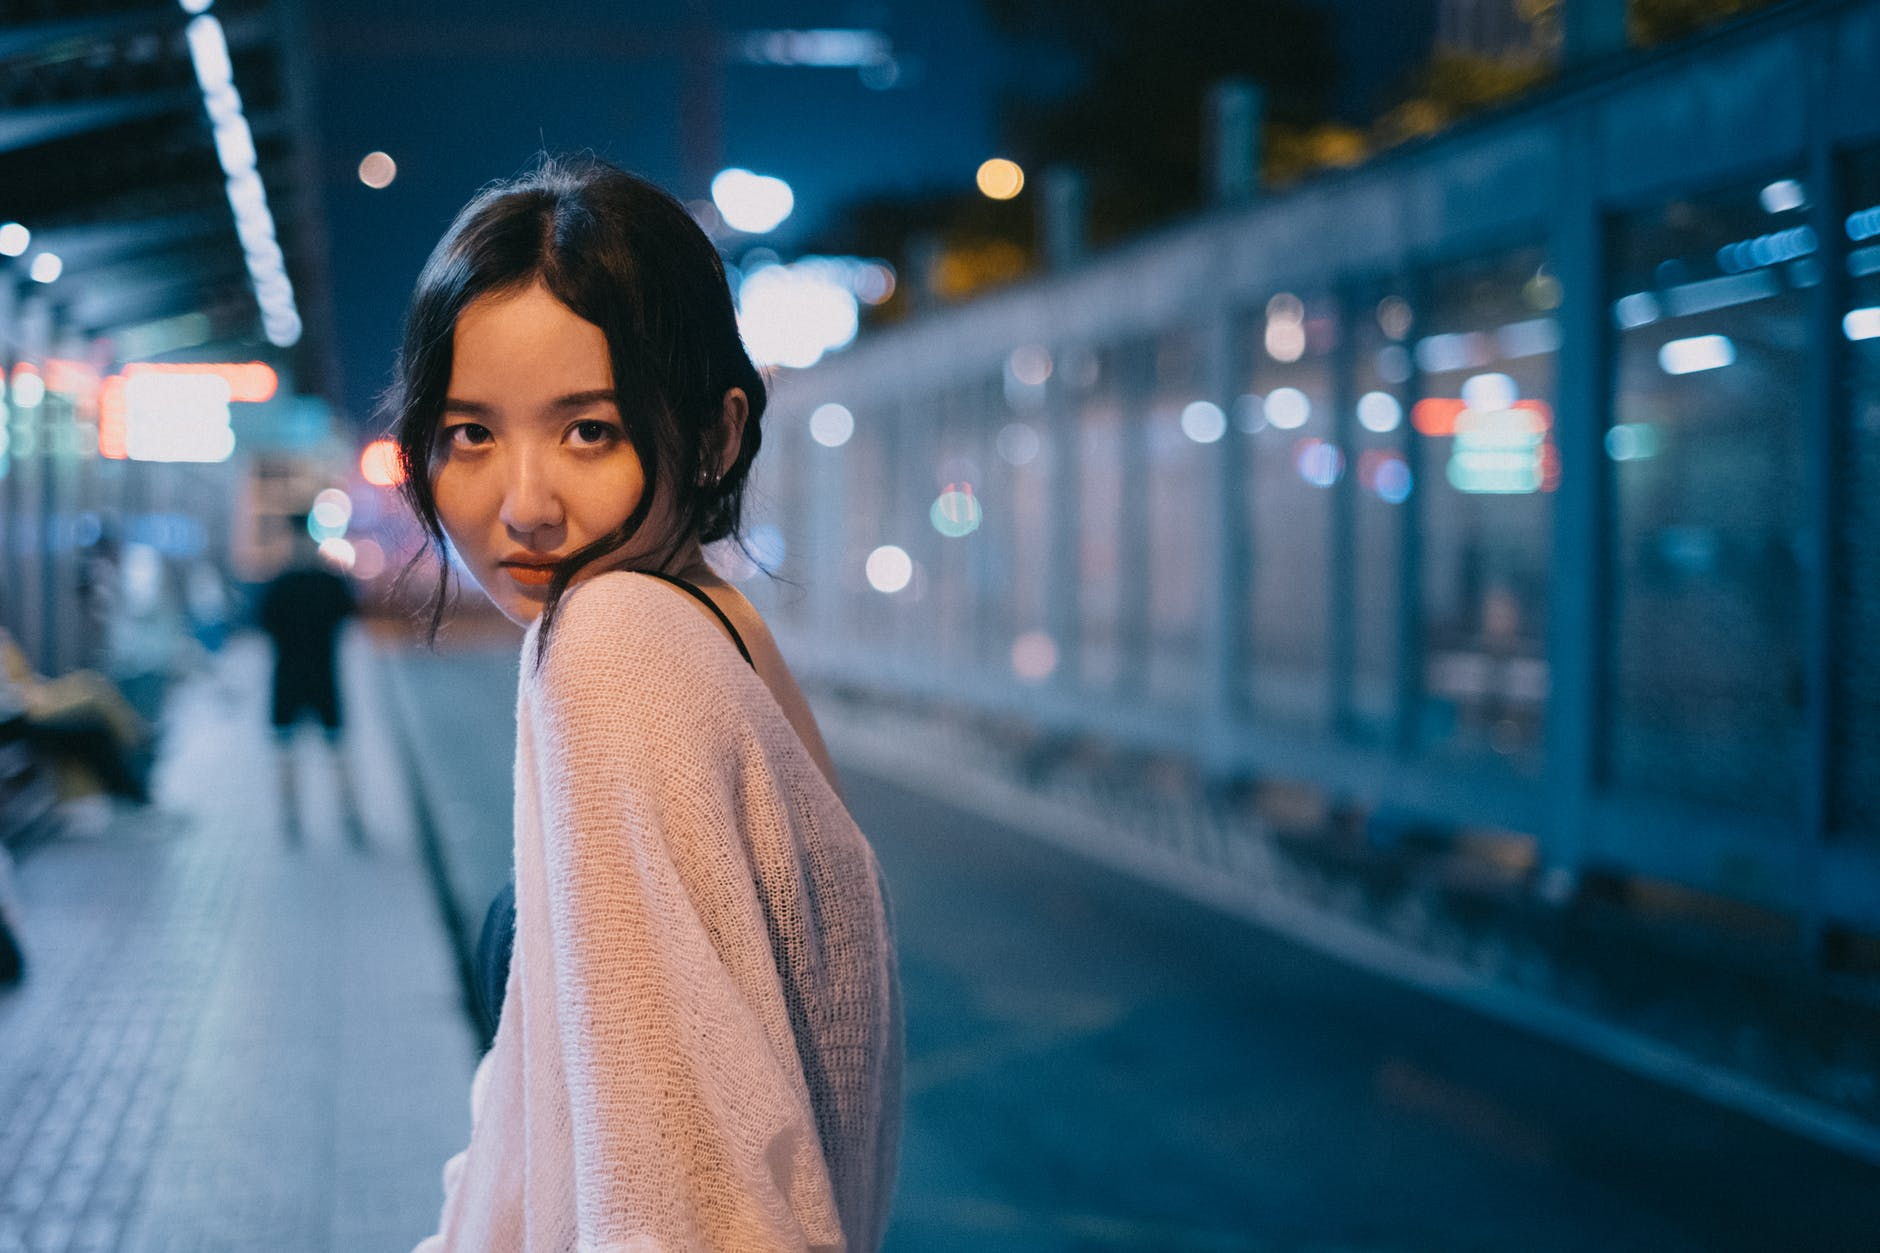 young asian woman in evening street with bright lights